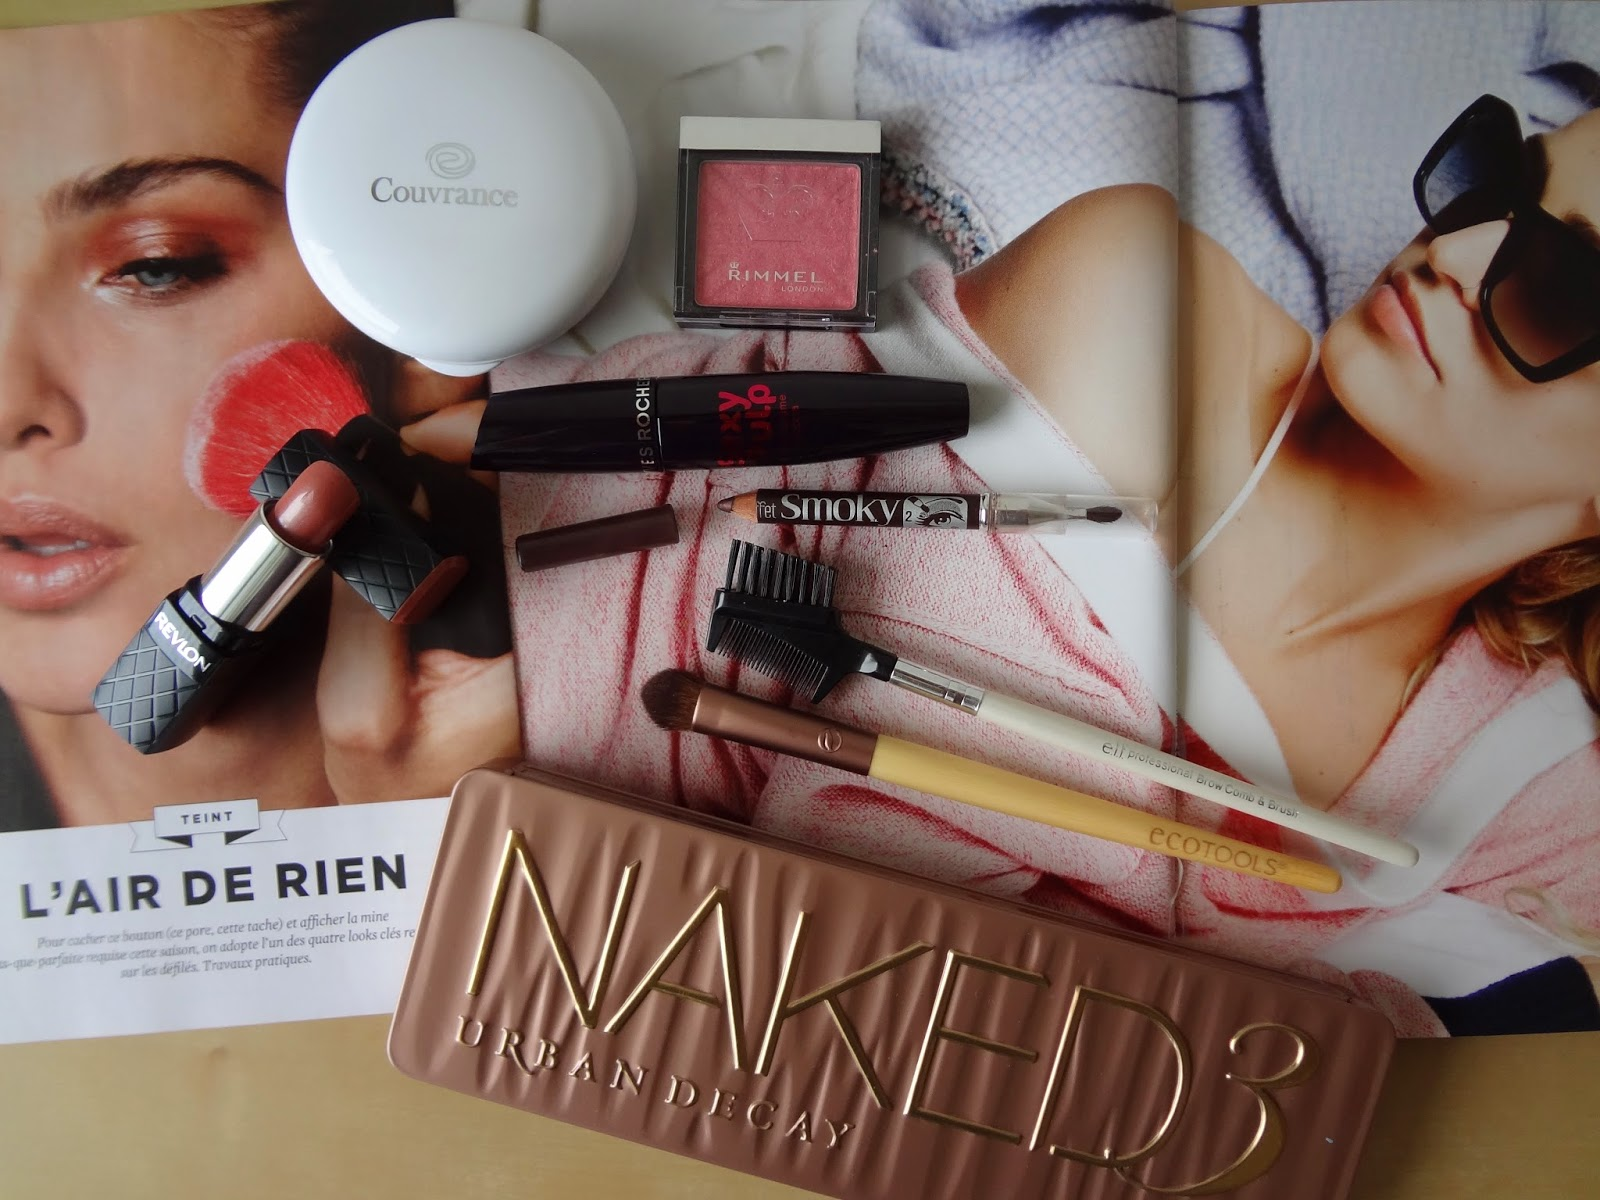 make-up-facile-simple-easy-pink-nude-maquillage-urban-decay-naked-3-pinceau-eco-tools-brush-eyeshadow-bourjois-smoky-brown-revlon-colorburst-lipstick-blush-rouge-levres-couvrance-avene-compact-oil-free-mascare-sexy-pulp-rimmel-live-pink